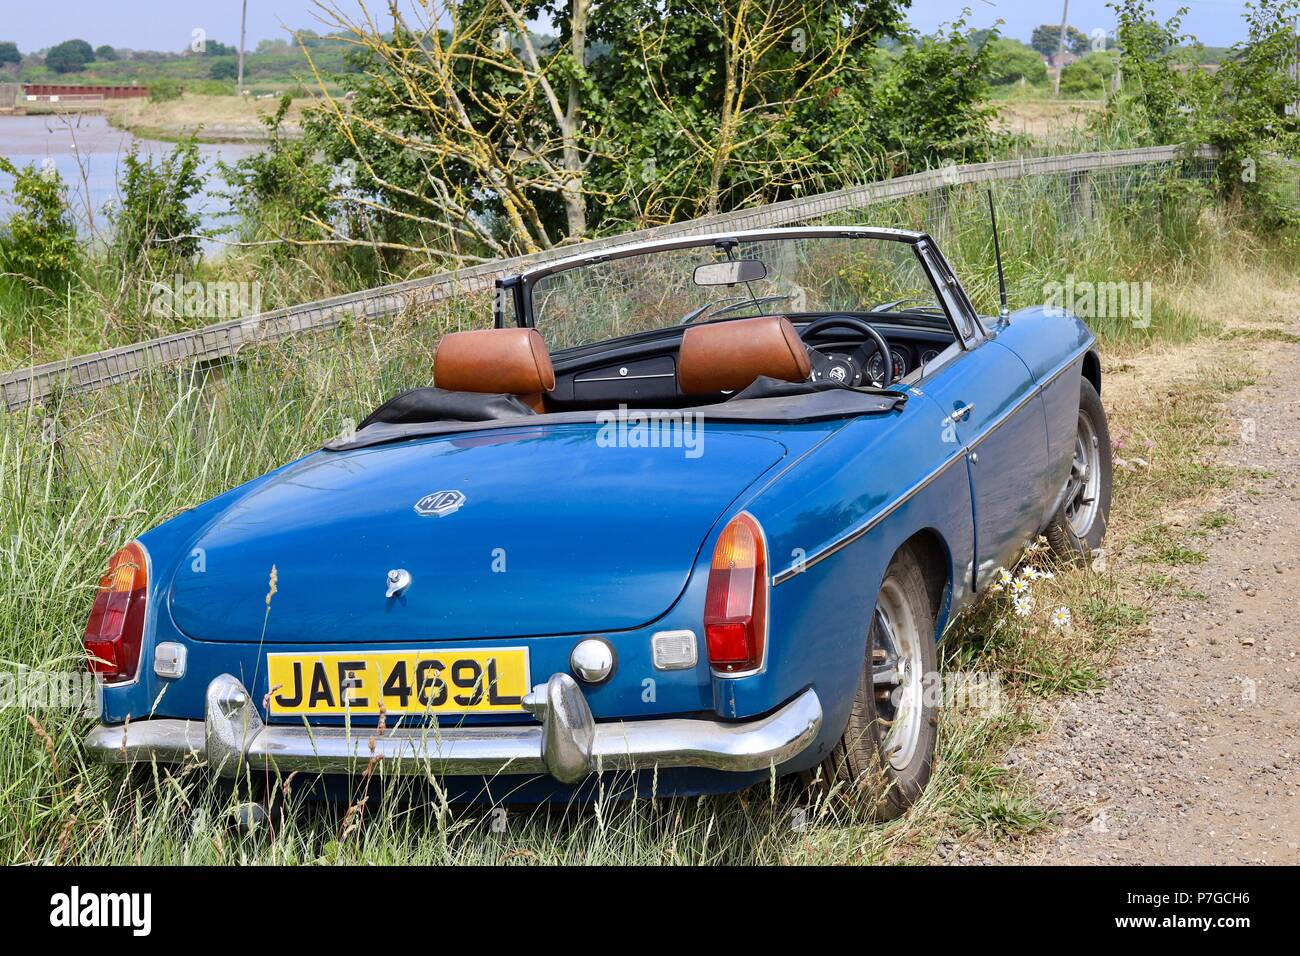 Vintage blue two-seater MG Midget open top sports car. Estimated ...